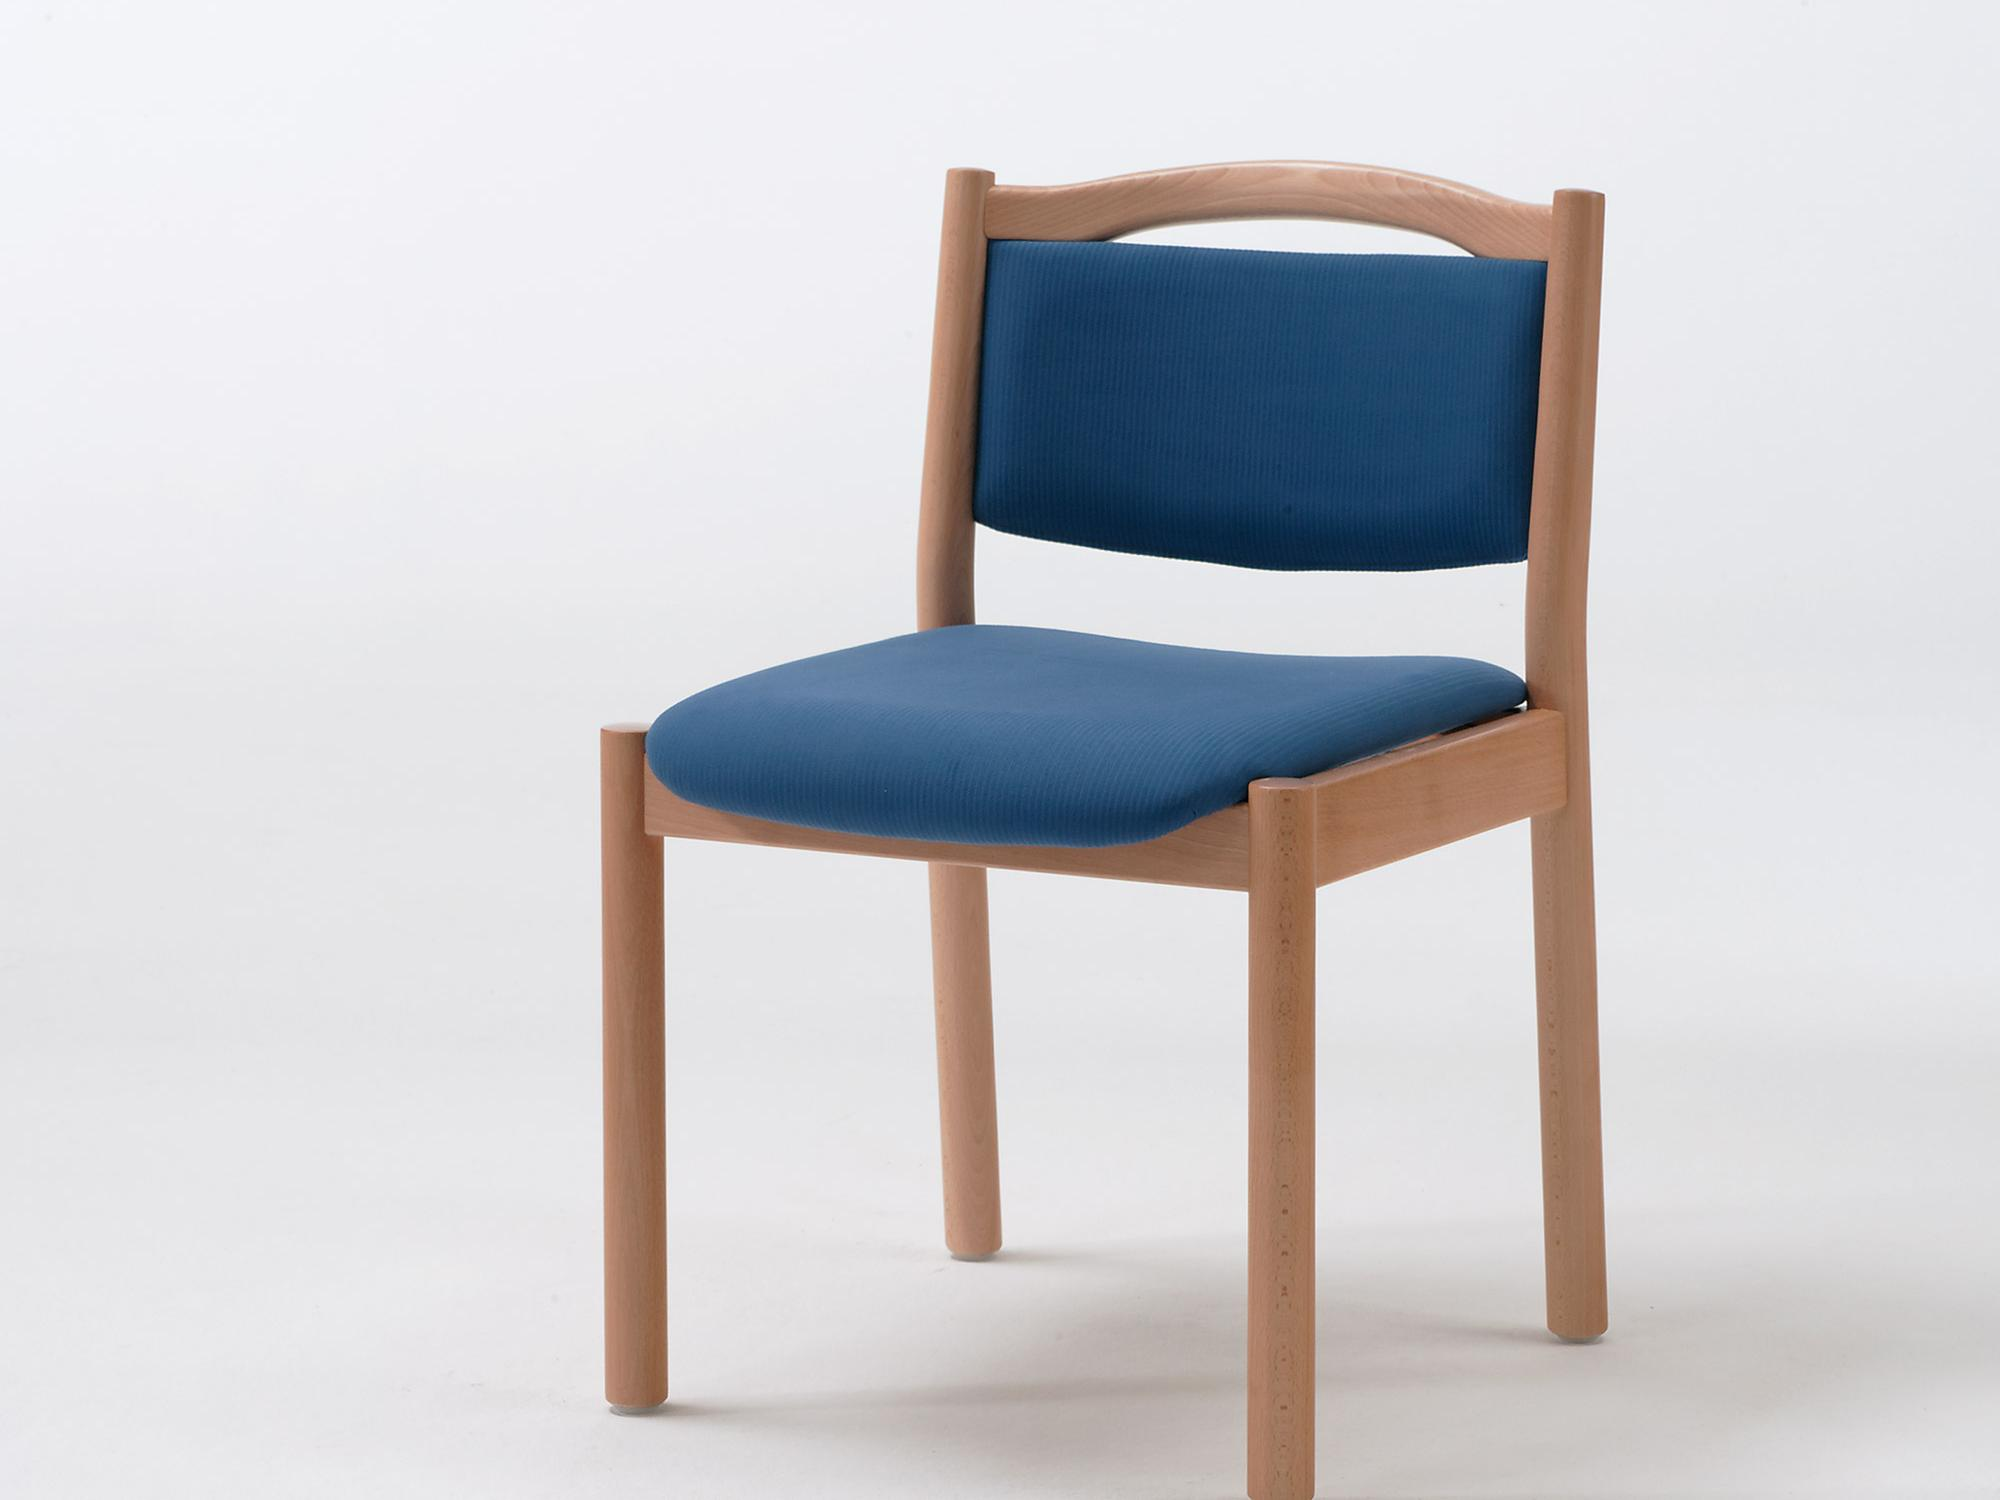 The Primo as a chair with handle